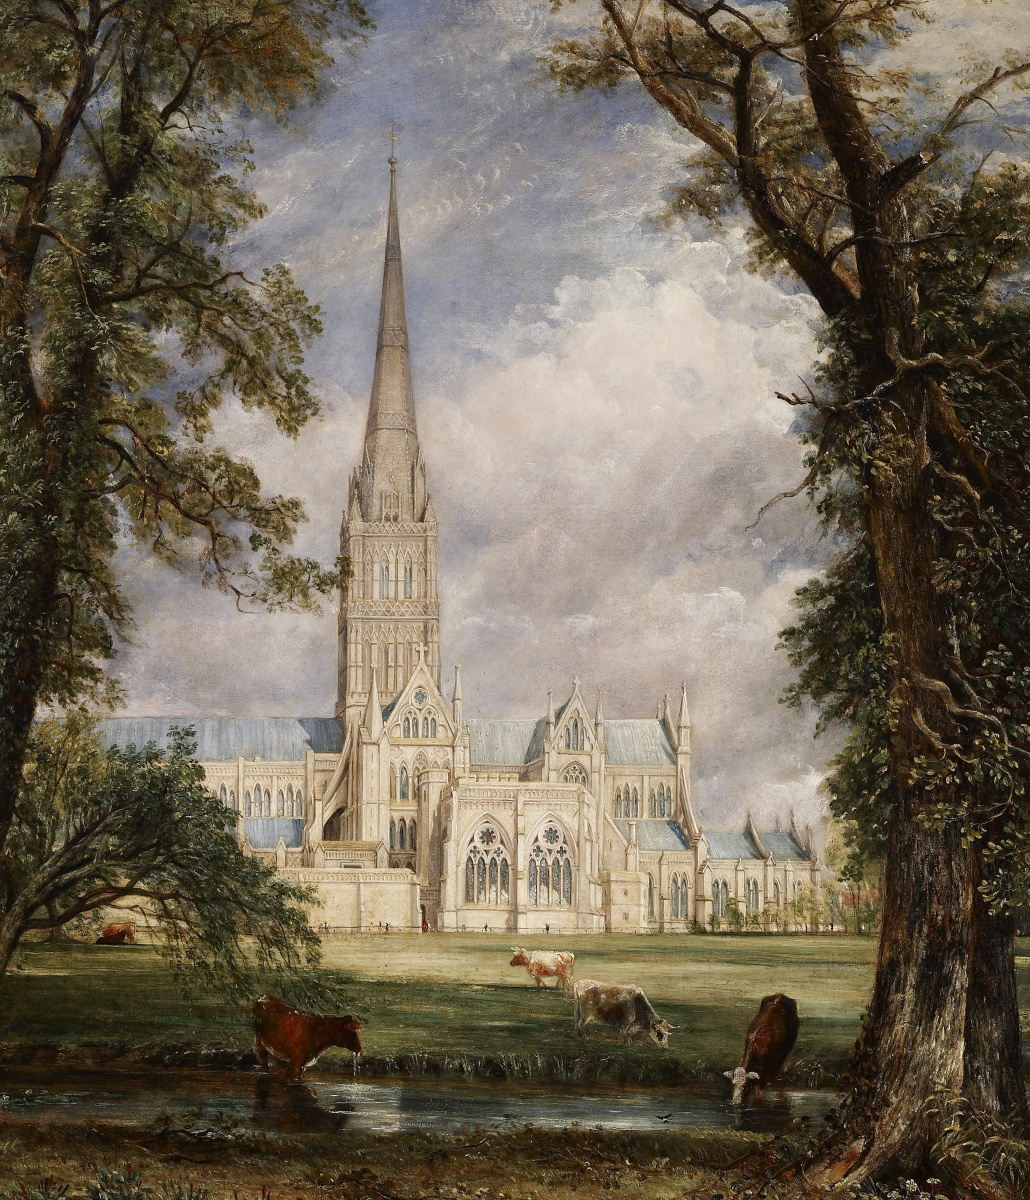 John Constable. View of Salisbury Cathedral from the garden of the Bishop II. Fragment. The Cathedral and a grazing herd of cattle